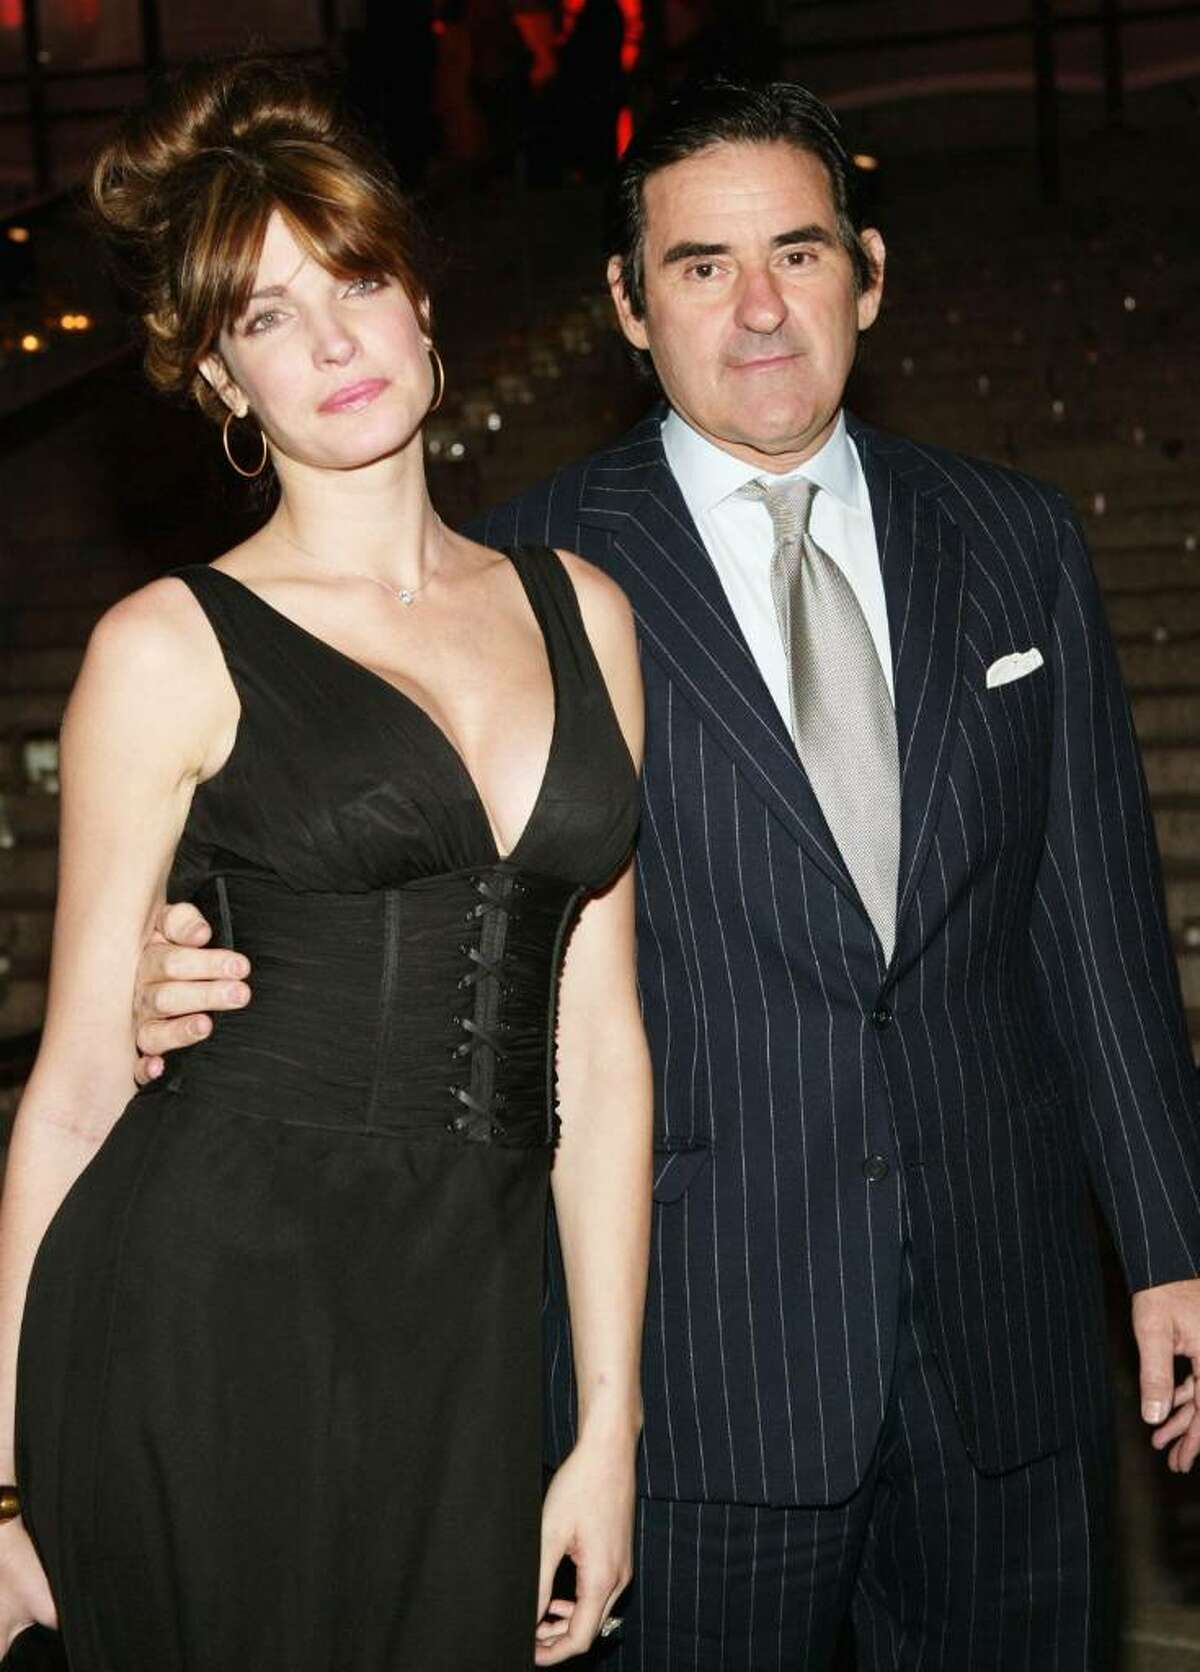 Model Stephanie Seymour and husband Peter Brant attend the Vanity Fair Party at the Tribeca Film Festival May 4, 2004 in New York City.